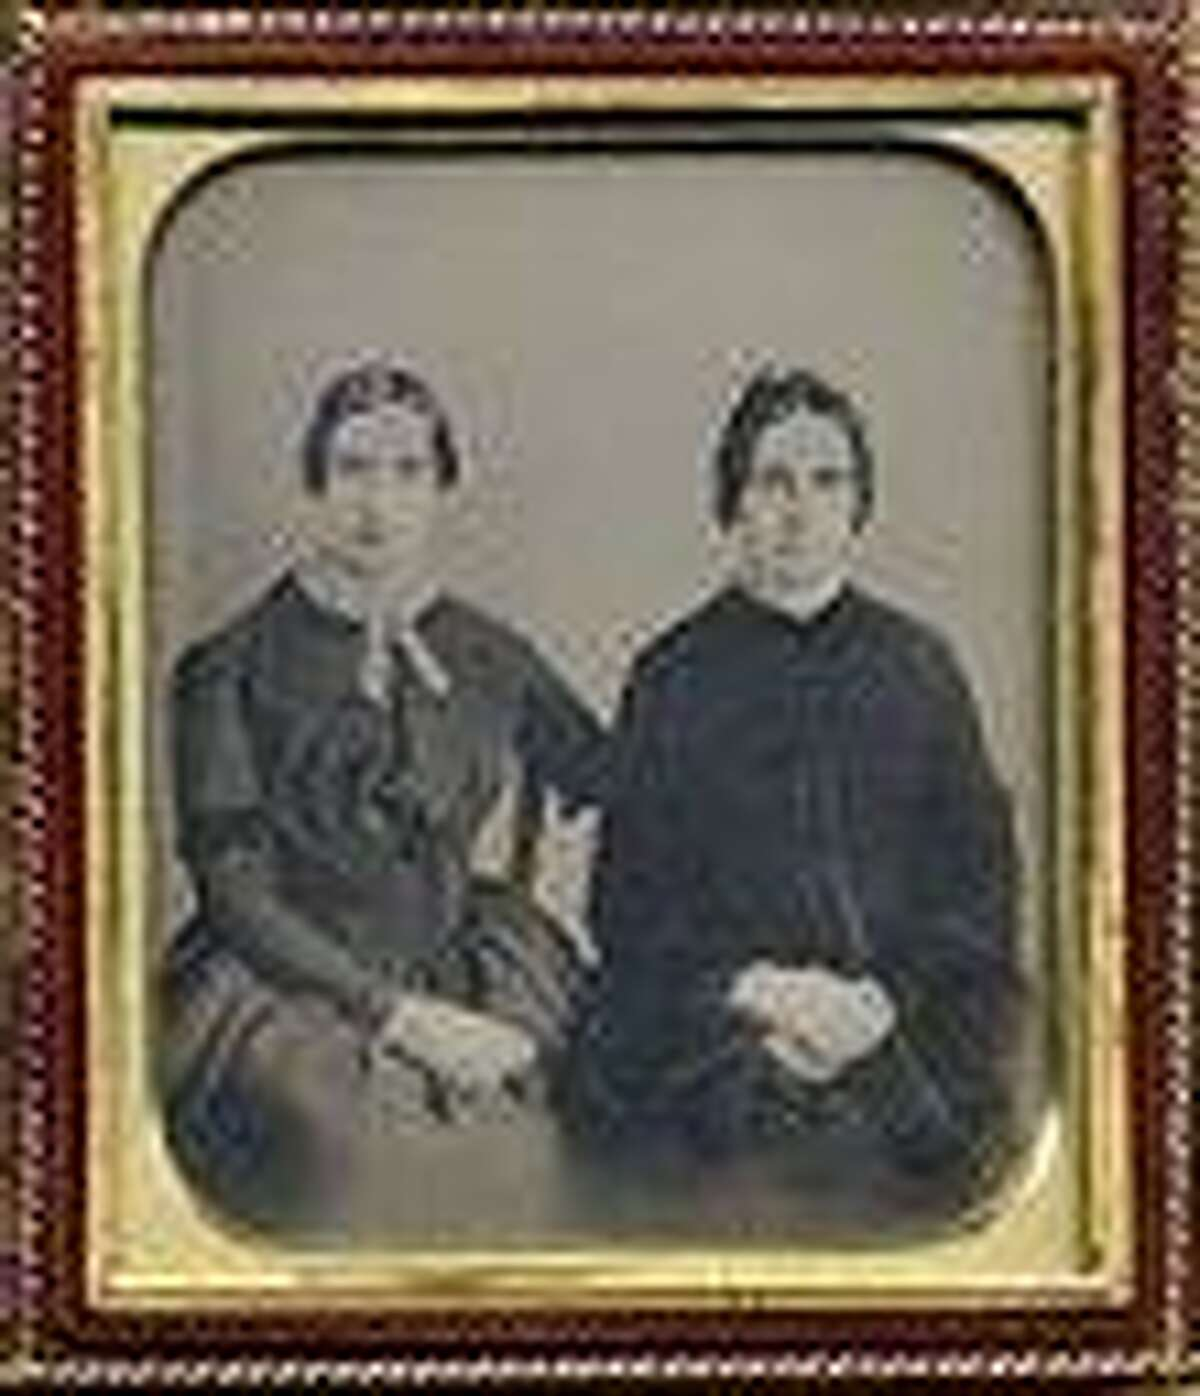 This photo released Friday, Sept. 7, 2012 by Amherst College Archives and Special Collections, and the Emily Dickinson Museum, in Amherst, Mass., shows a copy of a circa 1860 daguerreotype purported to show a 30-year-old Emily Dickinson, left, with her friend Kate Scott Turner. The image was displayed during the August, 2012 Emily Dickinson International Society conference held at at Case Western Reserve University in Cleveland. (AP Photo/Amherst College Archives and Special Collections, and the Emily Dickinson Museum)